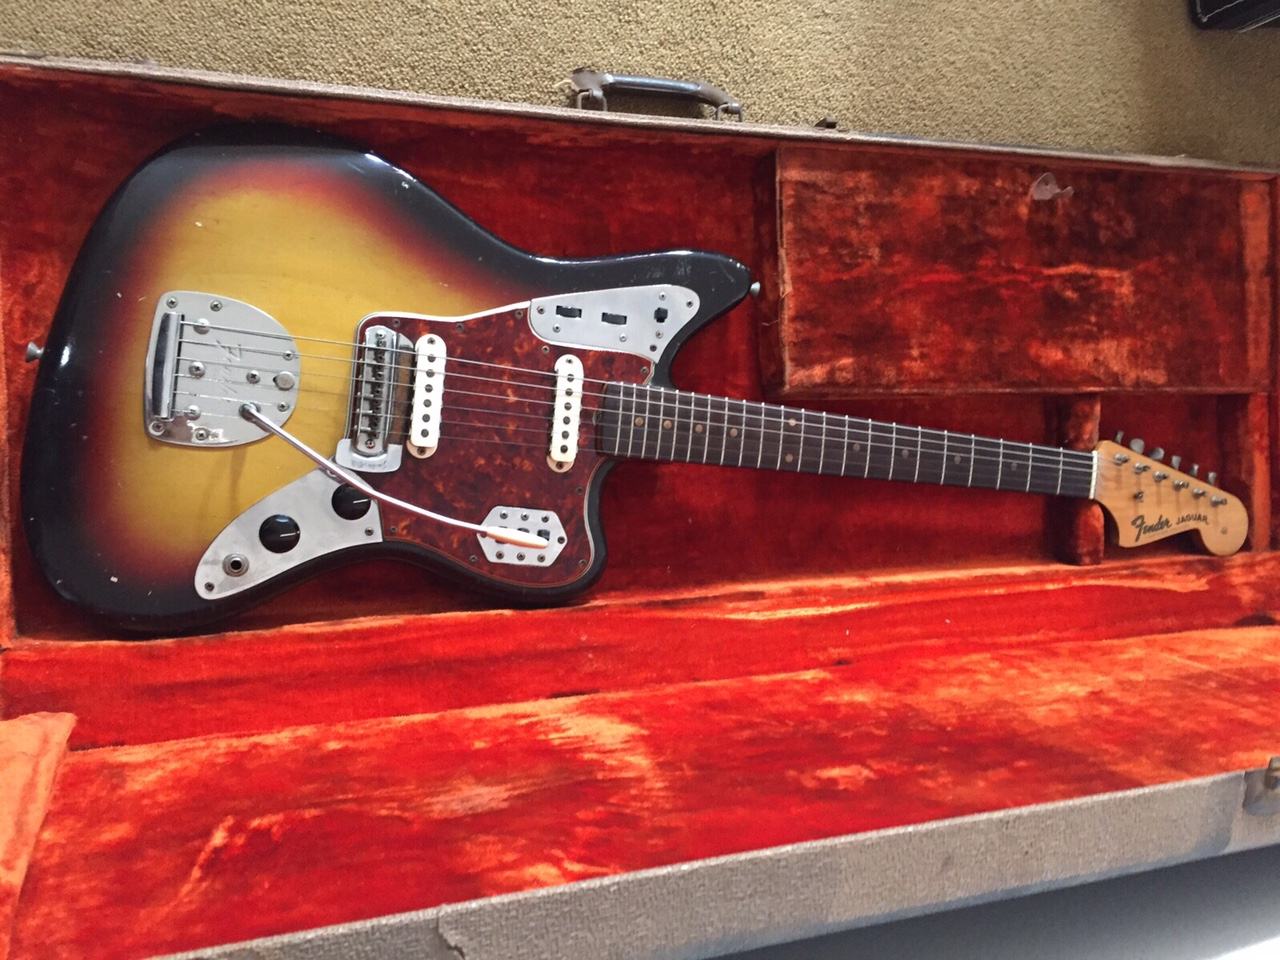 Guitars Wanted - Old Fender, Gibson Vintage Guitars + Amps Wanted for Cash!